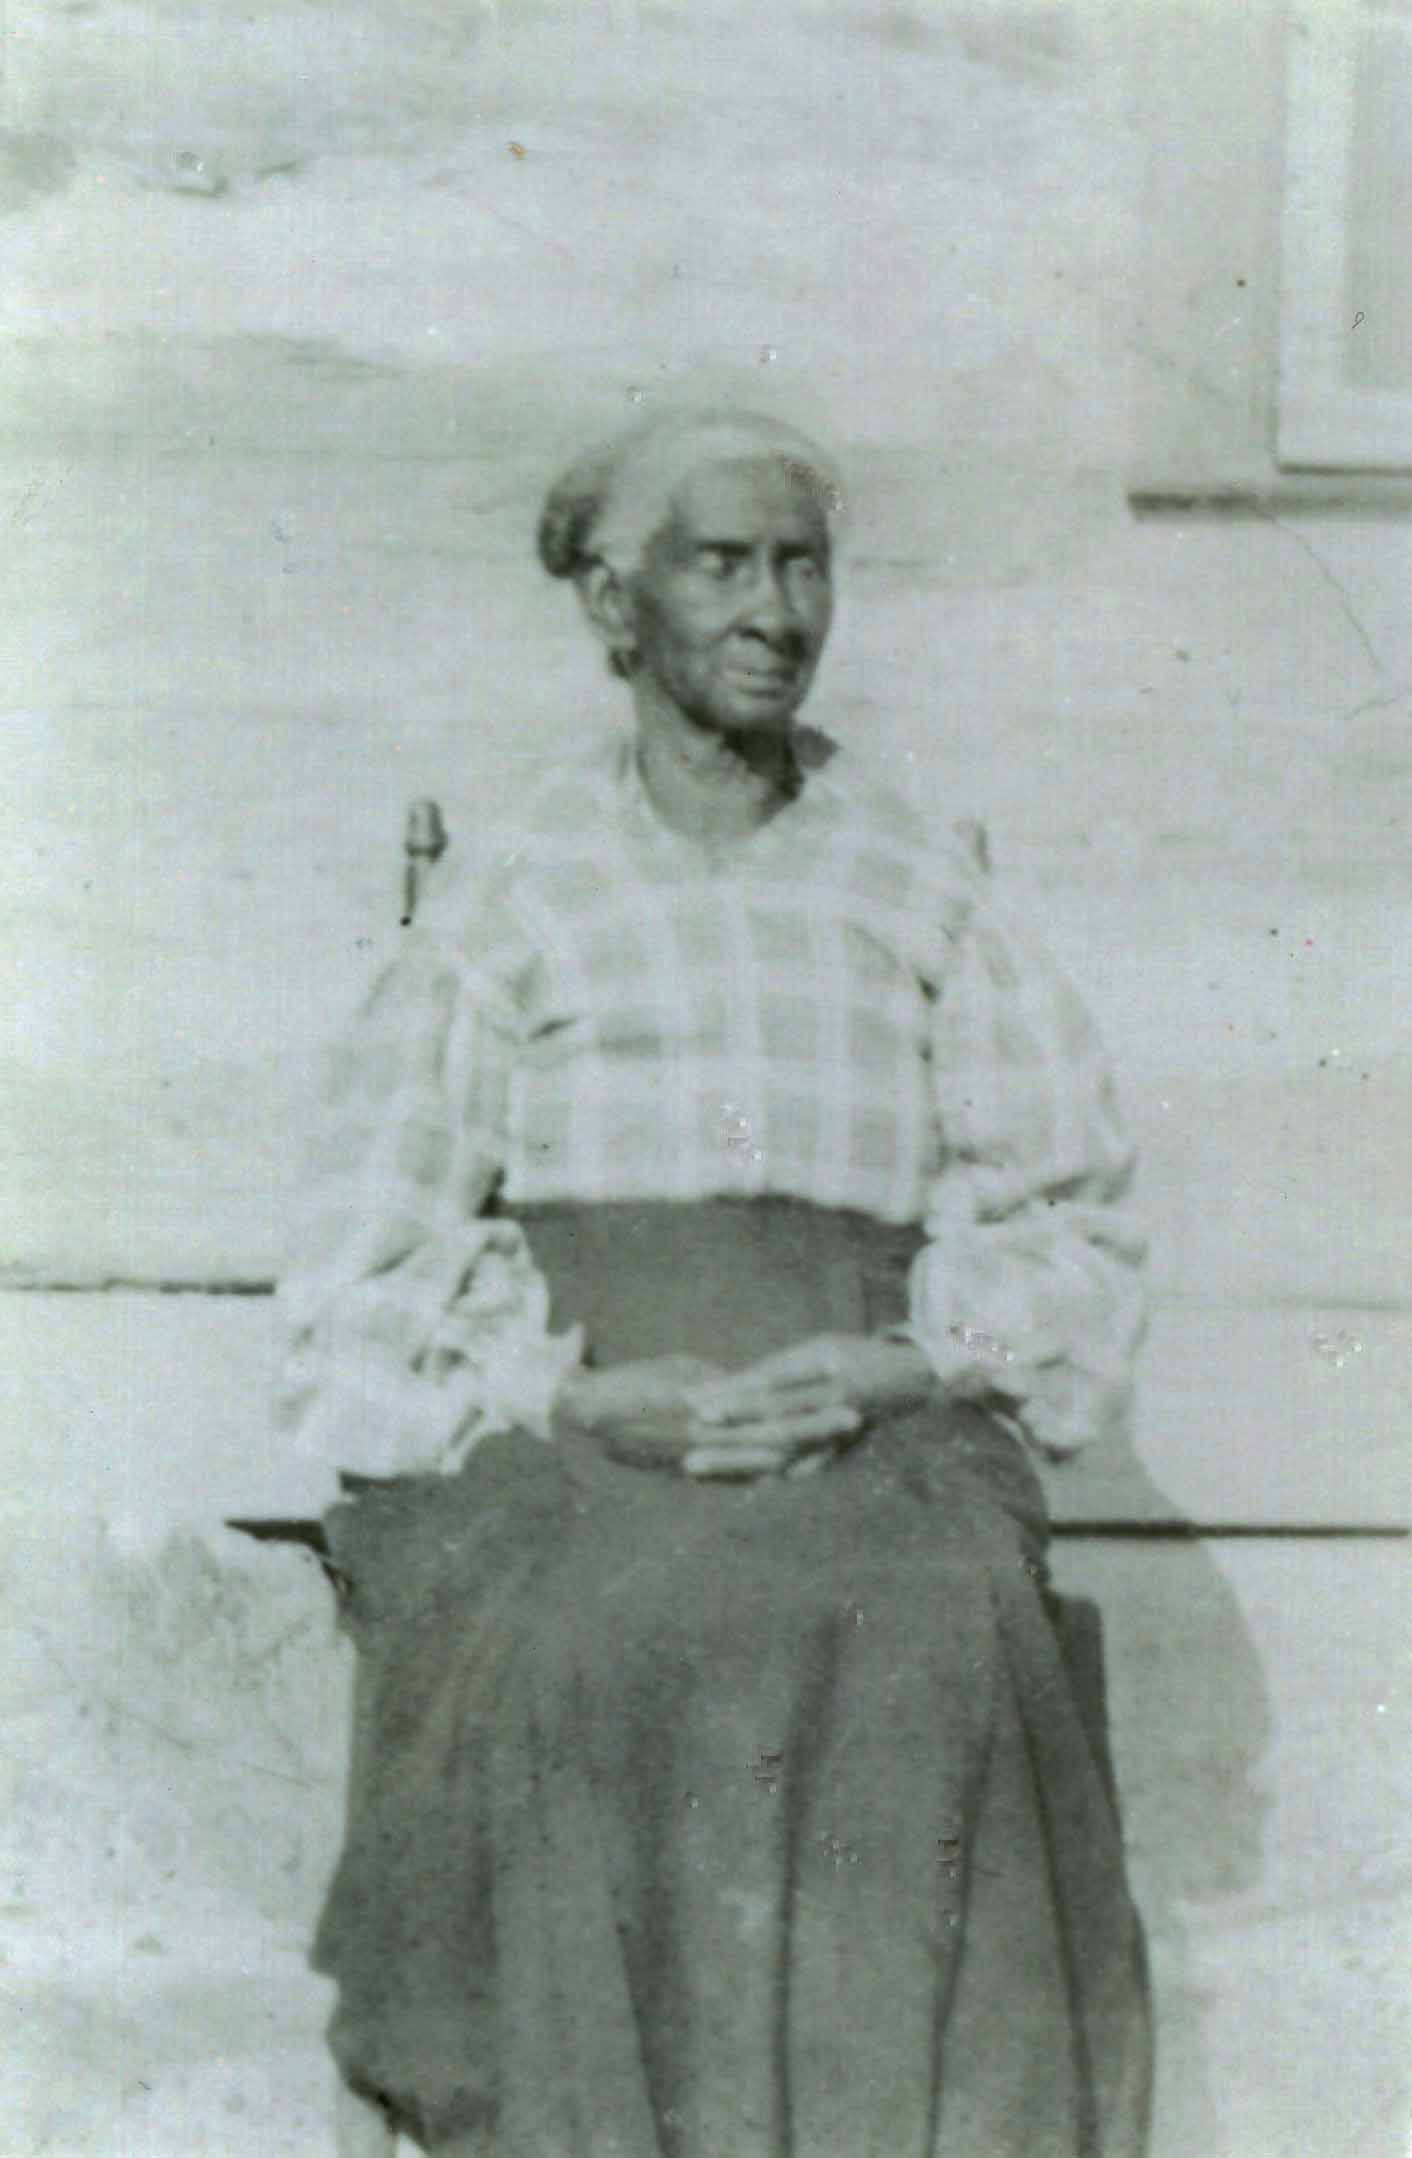 Photo of an African American woman sitting in a chair with her hair up in a bun. she is wearing a checkered shirt and a long, dark colored skirt.